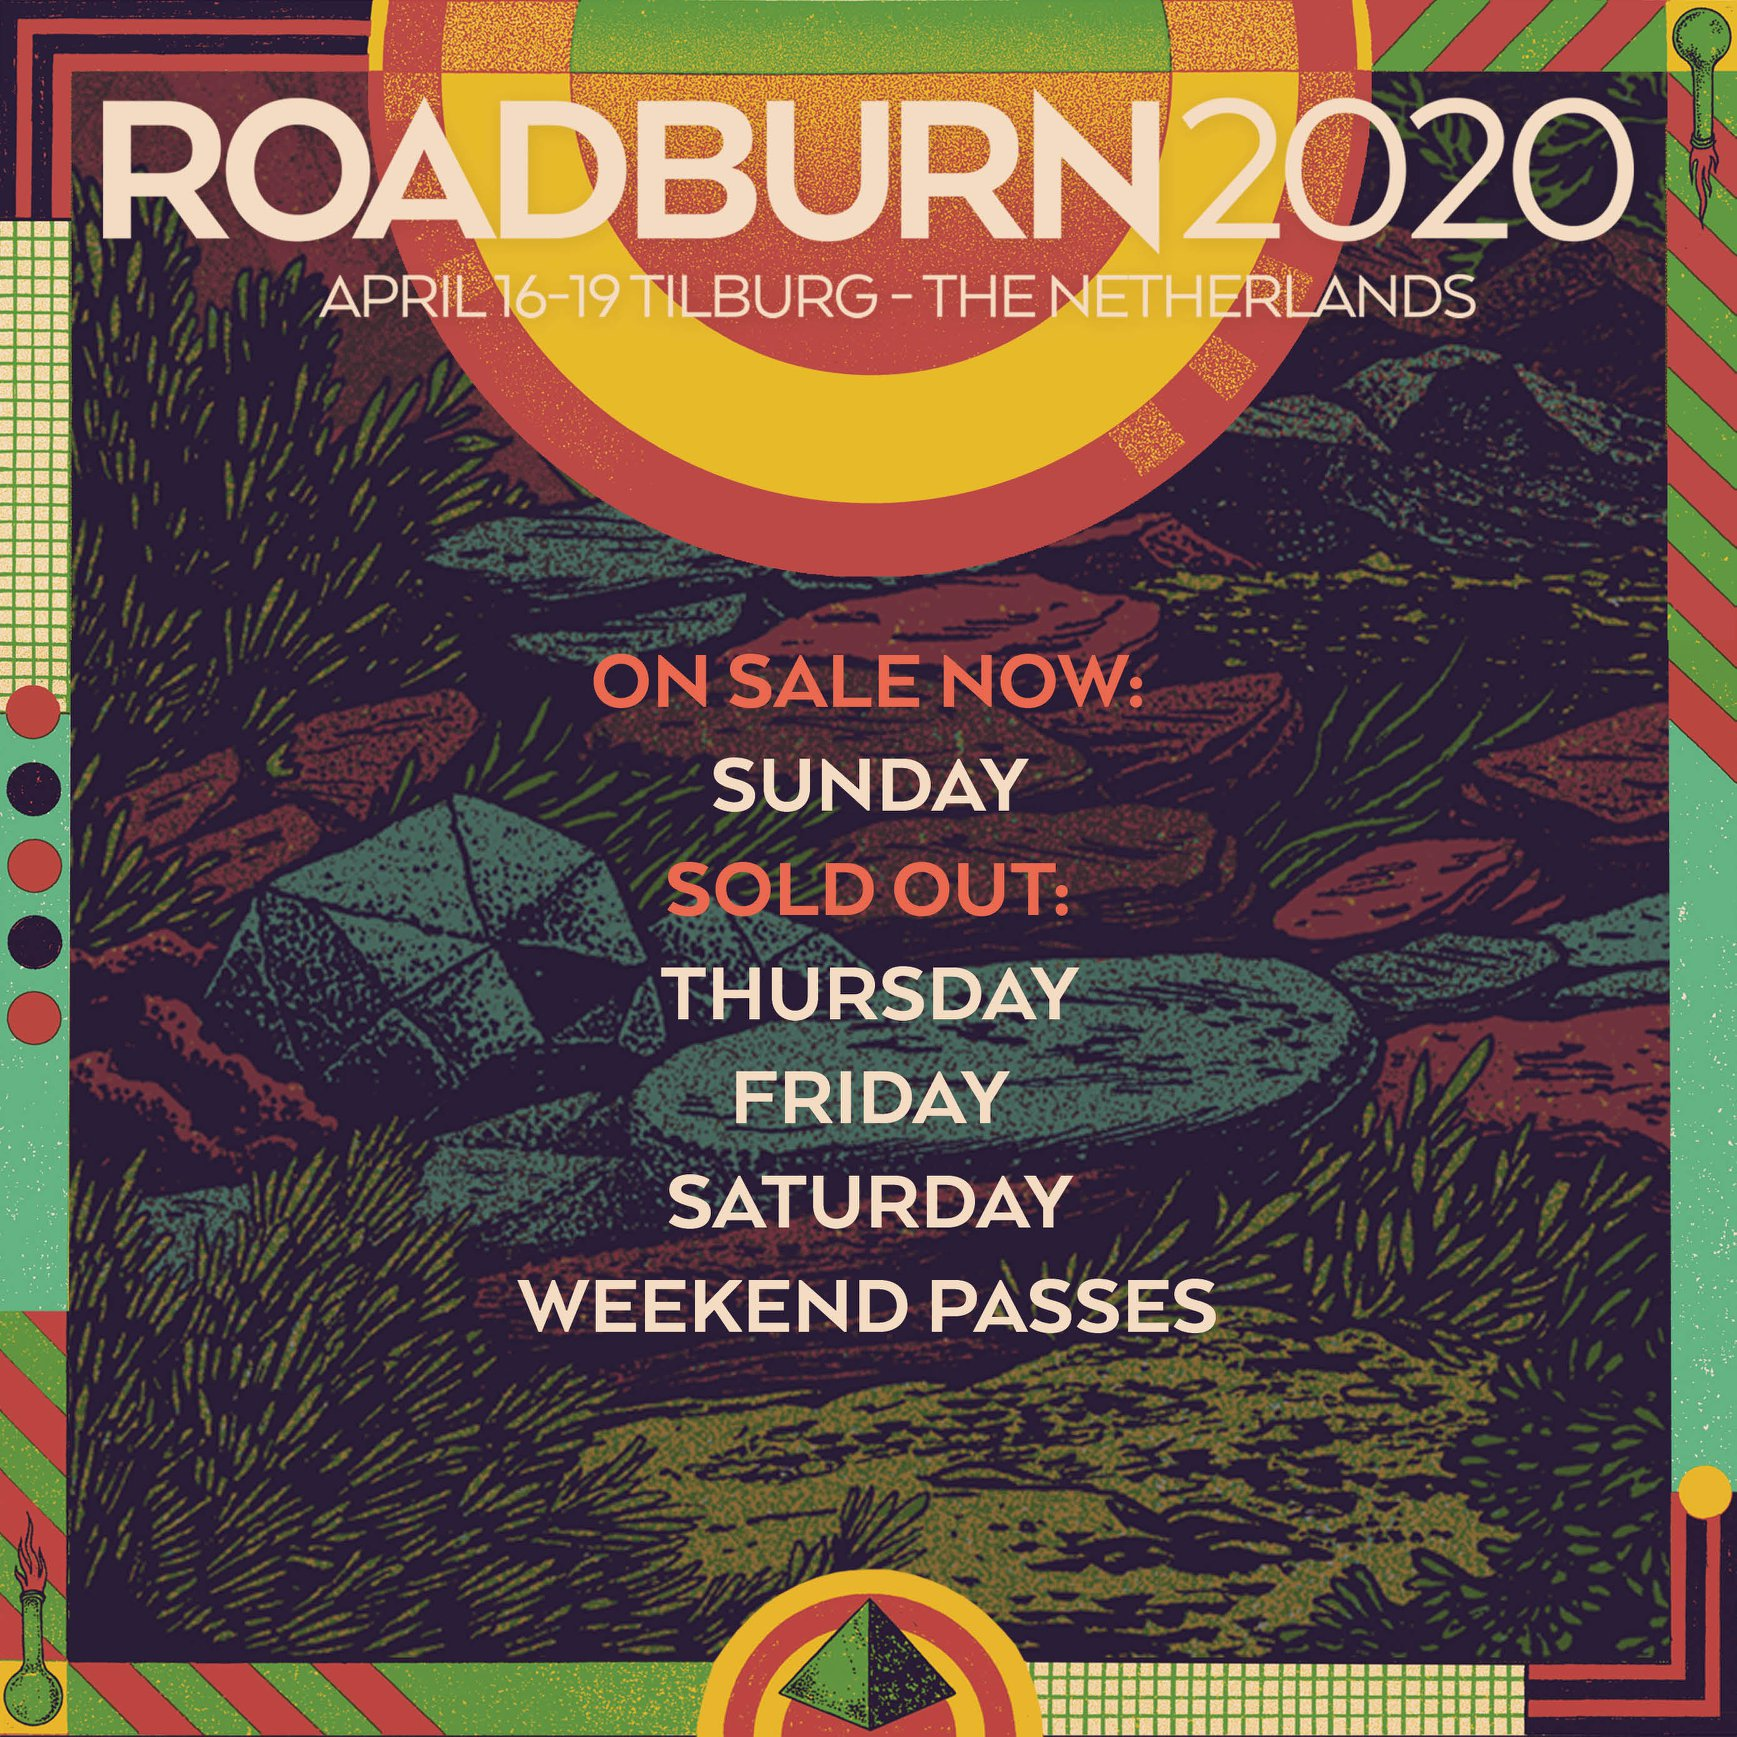 roadburn 2020 selling like hotcakes